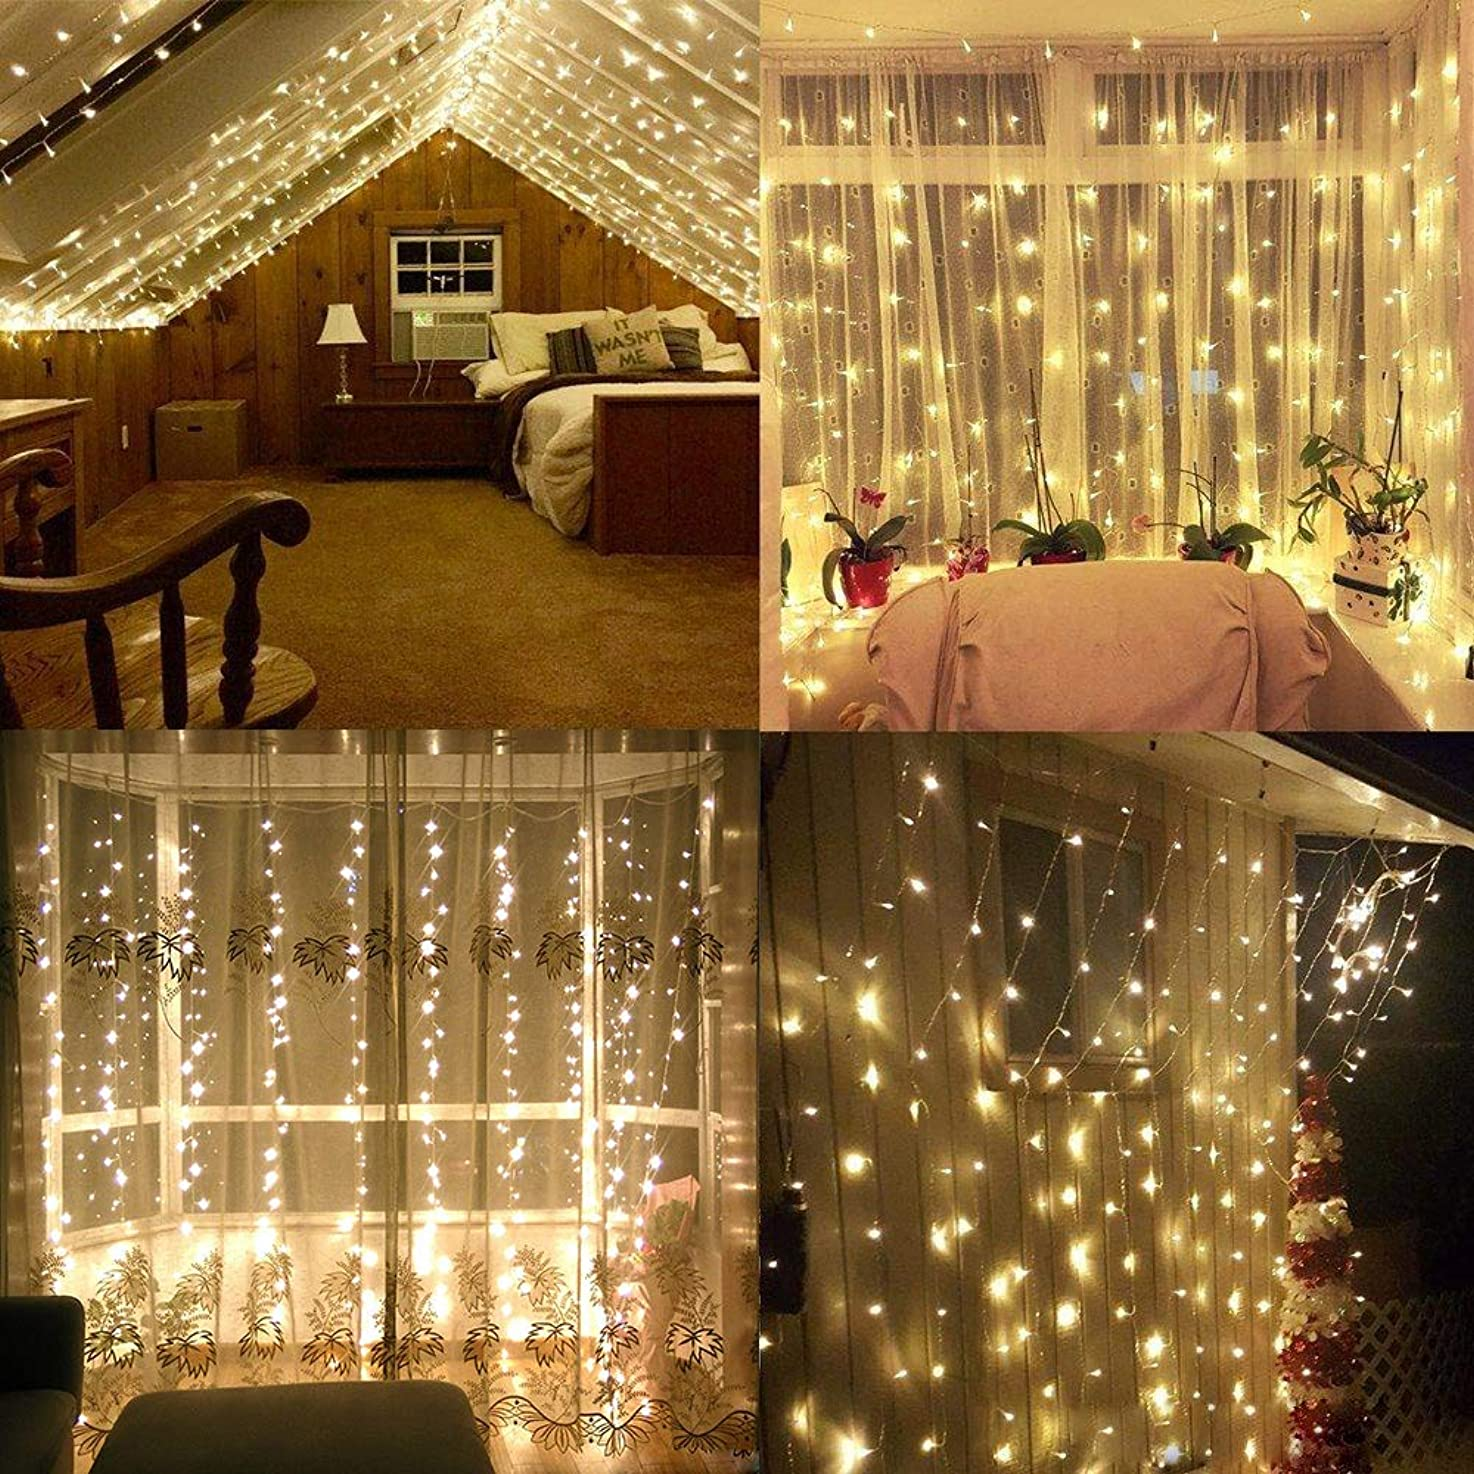 HuiZhen LED Window Curtain Lights,300Led 9.8ft9.8ft Connectable Curtain Icicle Fairy String Lights for Wedding Party Patio Lawn Garden Bedroom Outdoor Indoor Decoration (Warm White)